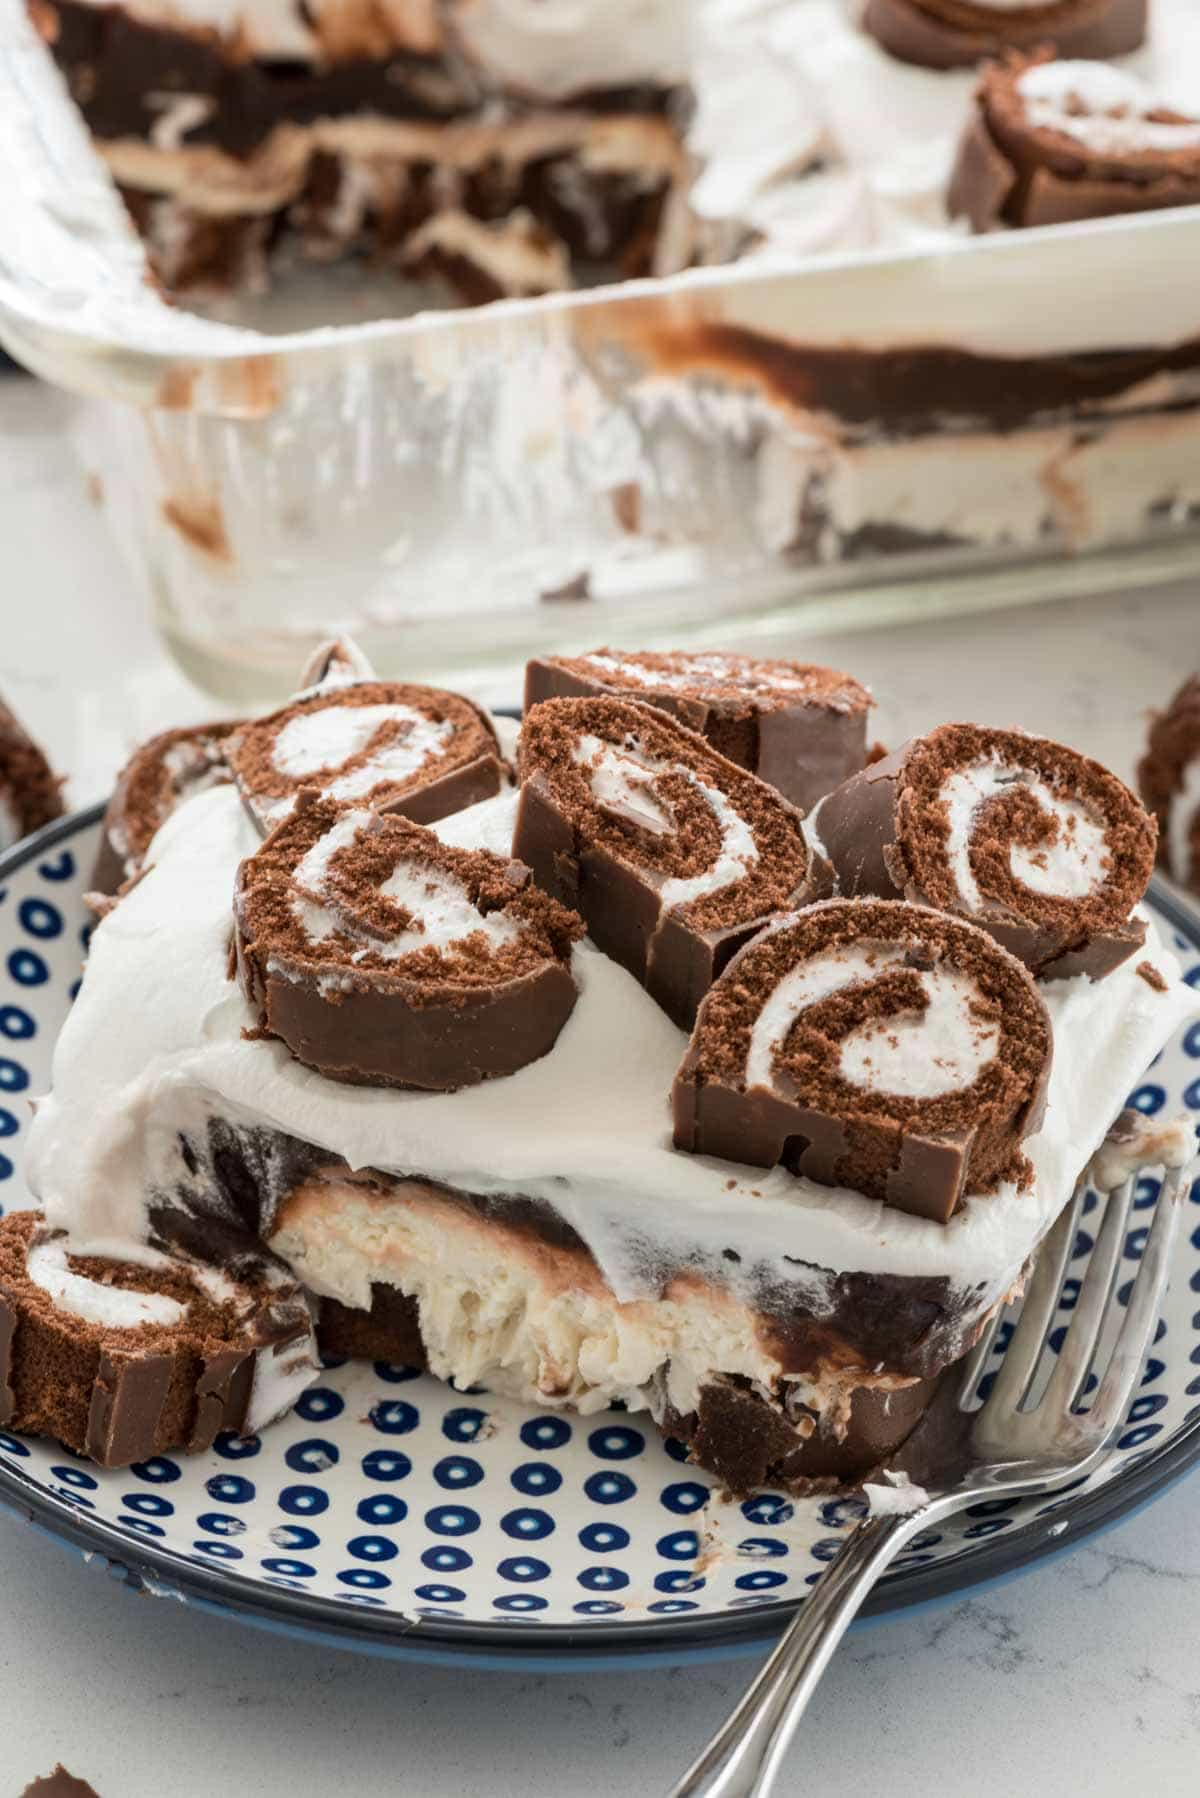 Swiss Roll Layered No Bake Dessert (4 of 7)